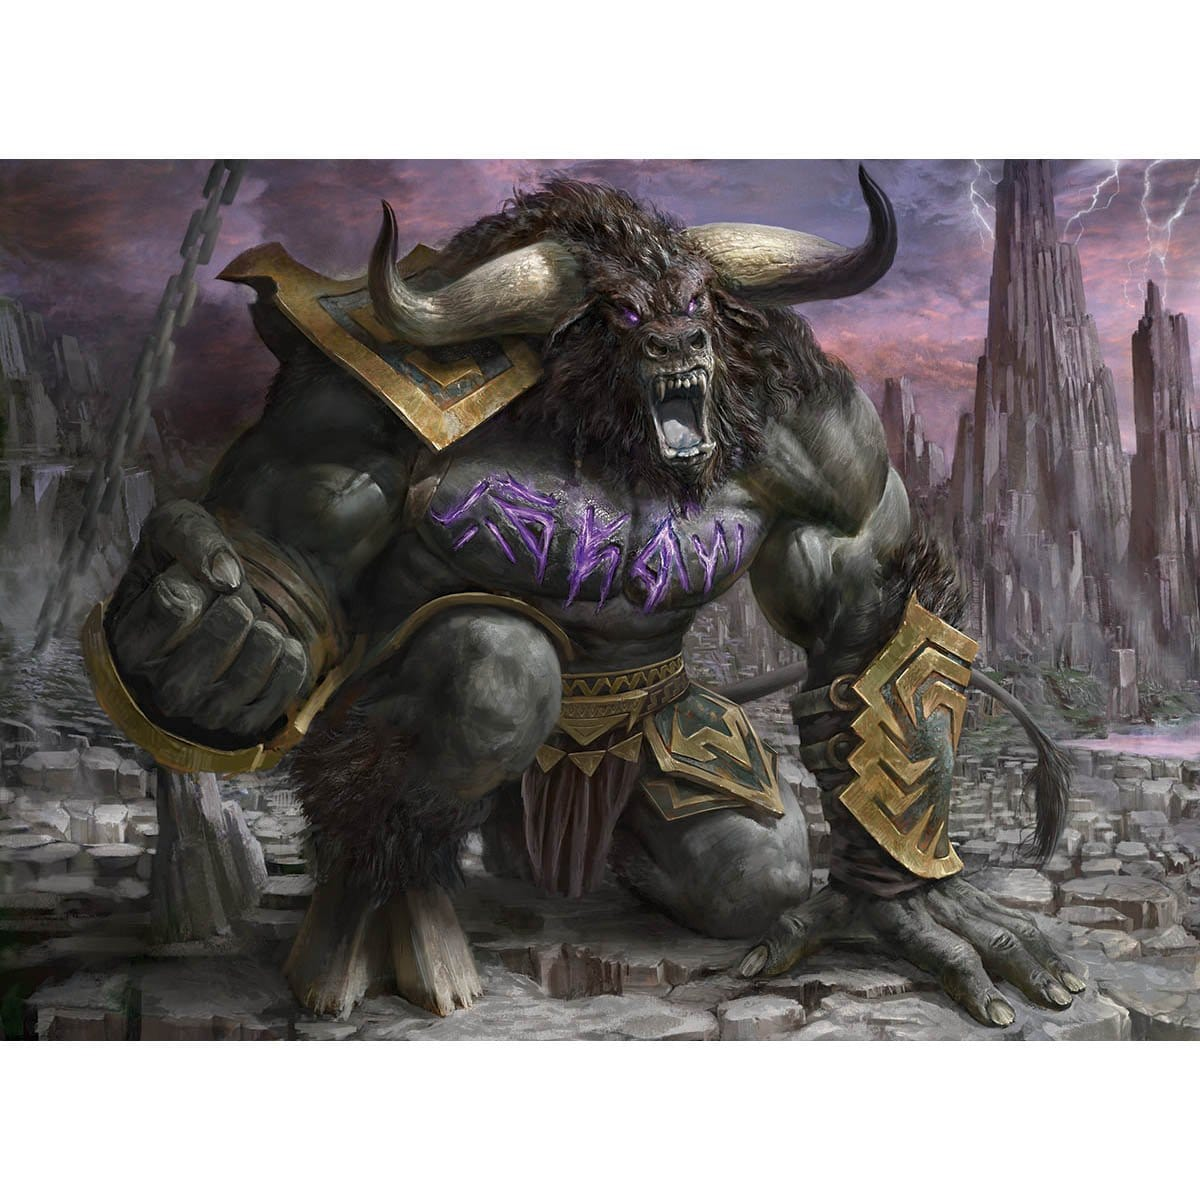 Rage-Scarred Berserker Print - Print - Original Magic Art - Accessories for Magic the Gathering and other card games